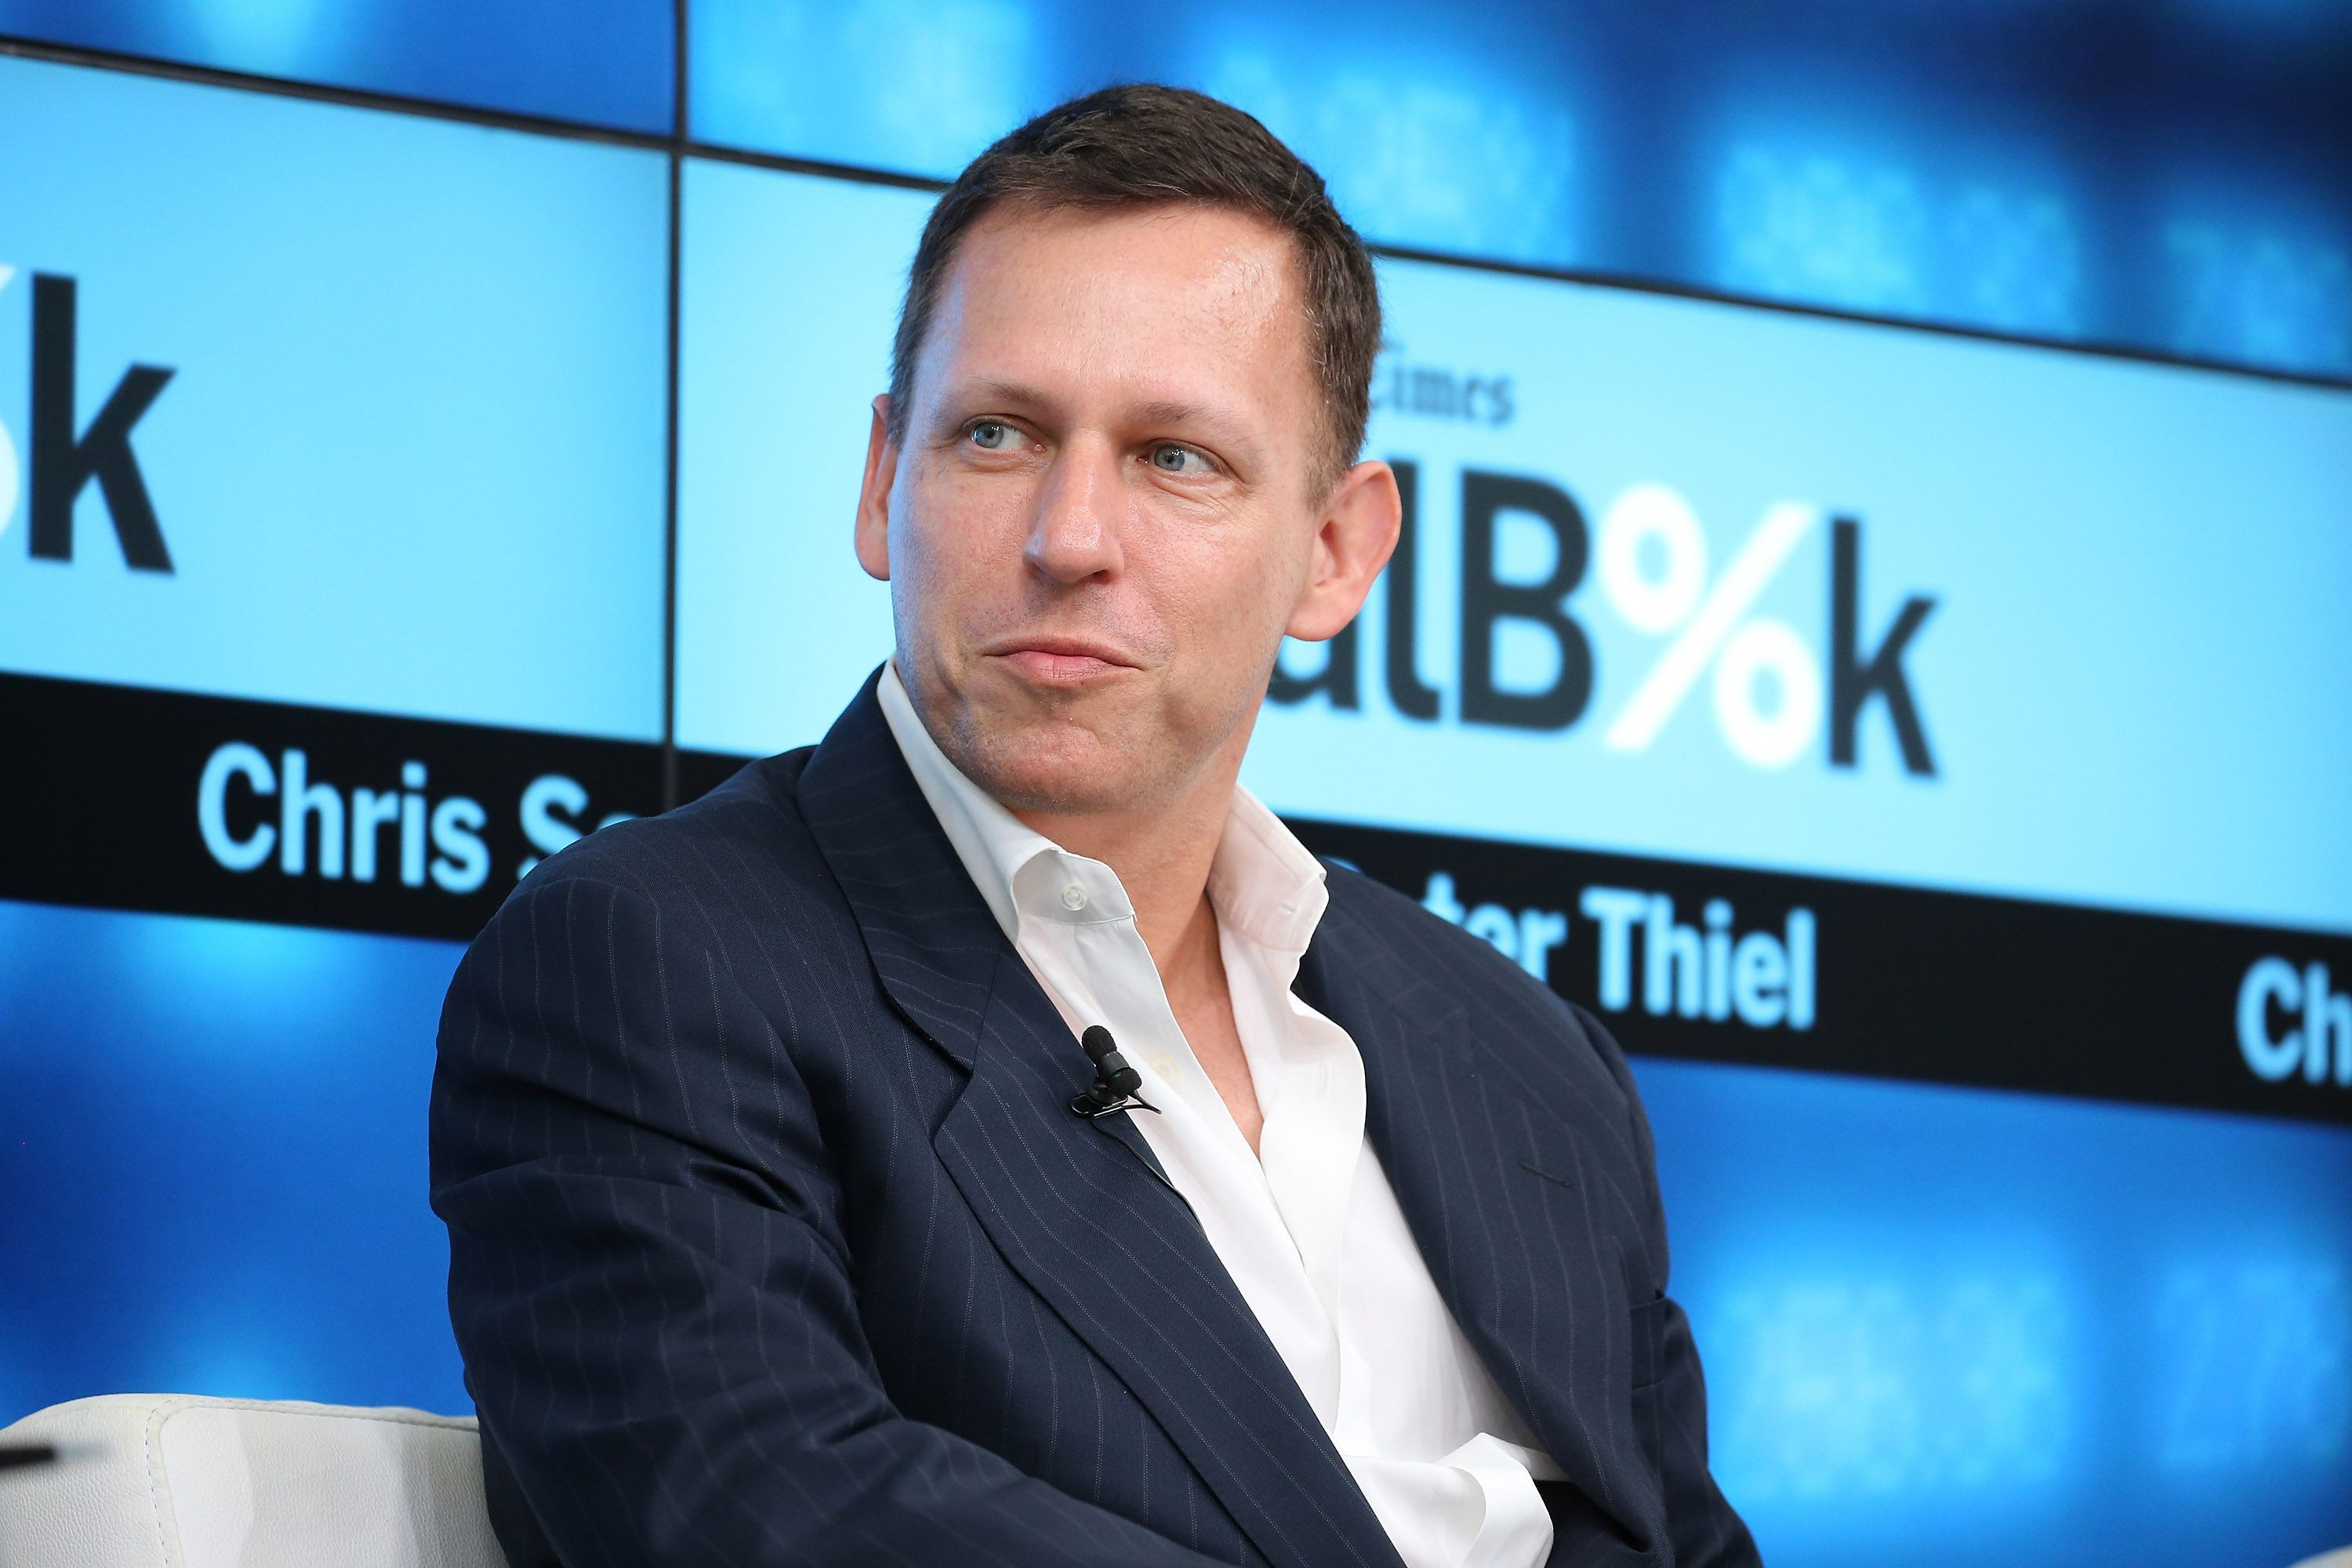 Peter Thiel, who has been an outspoken critic of the U.S. Food and Drug Administration, invested inRational Vaccines, w